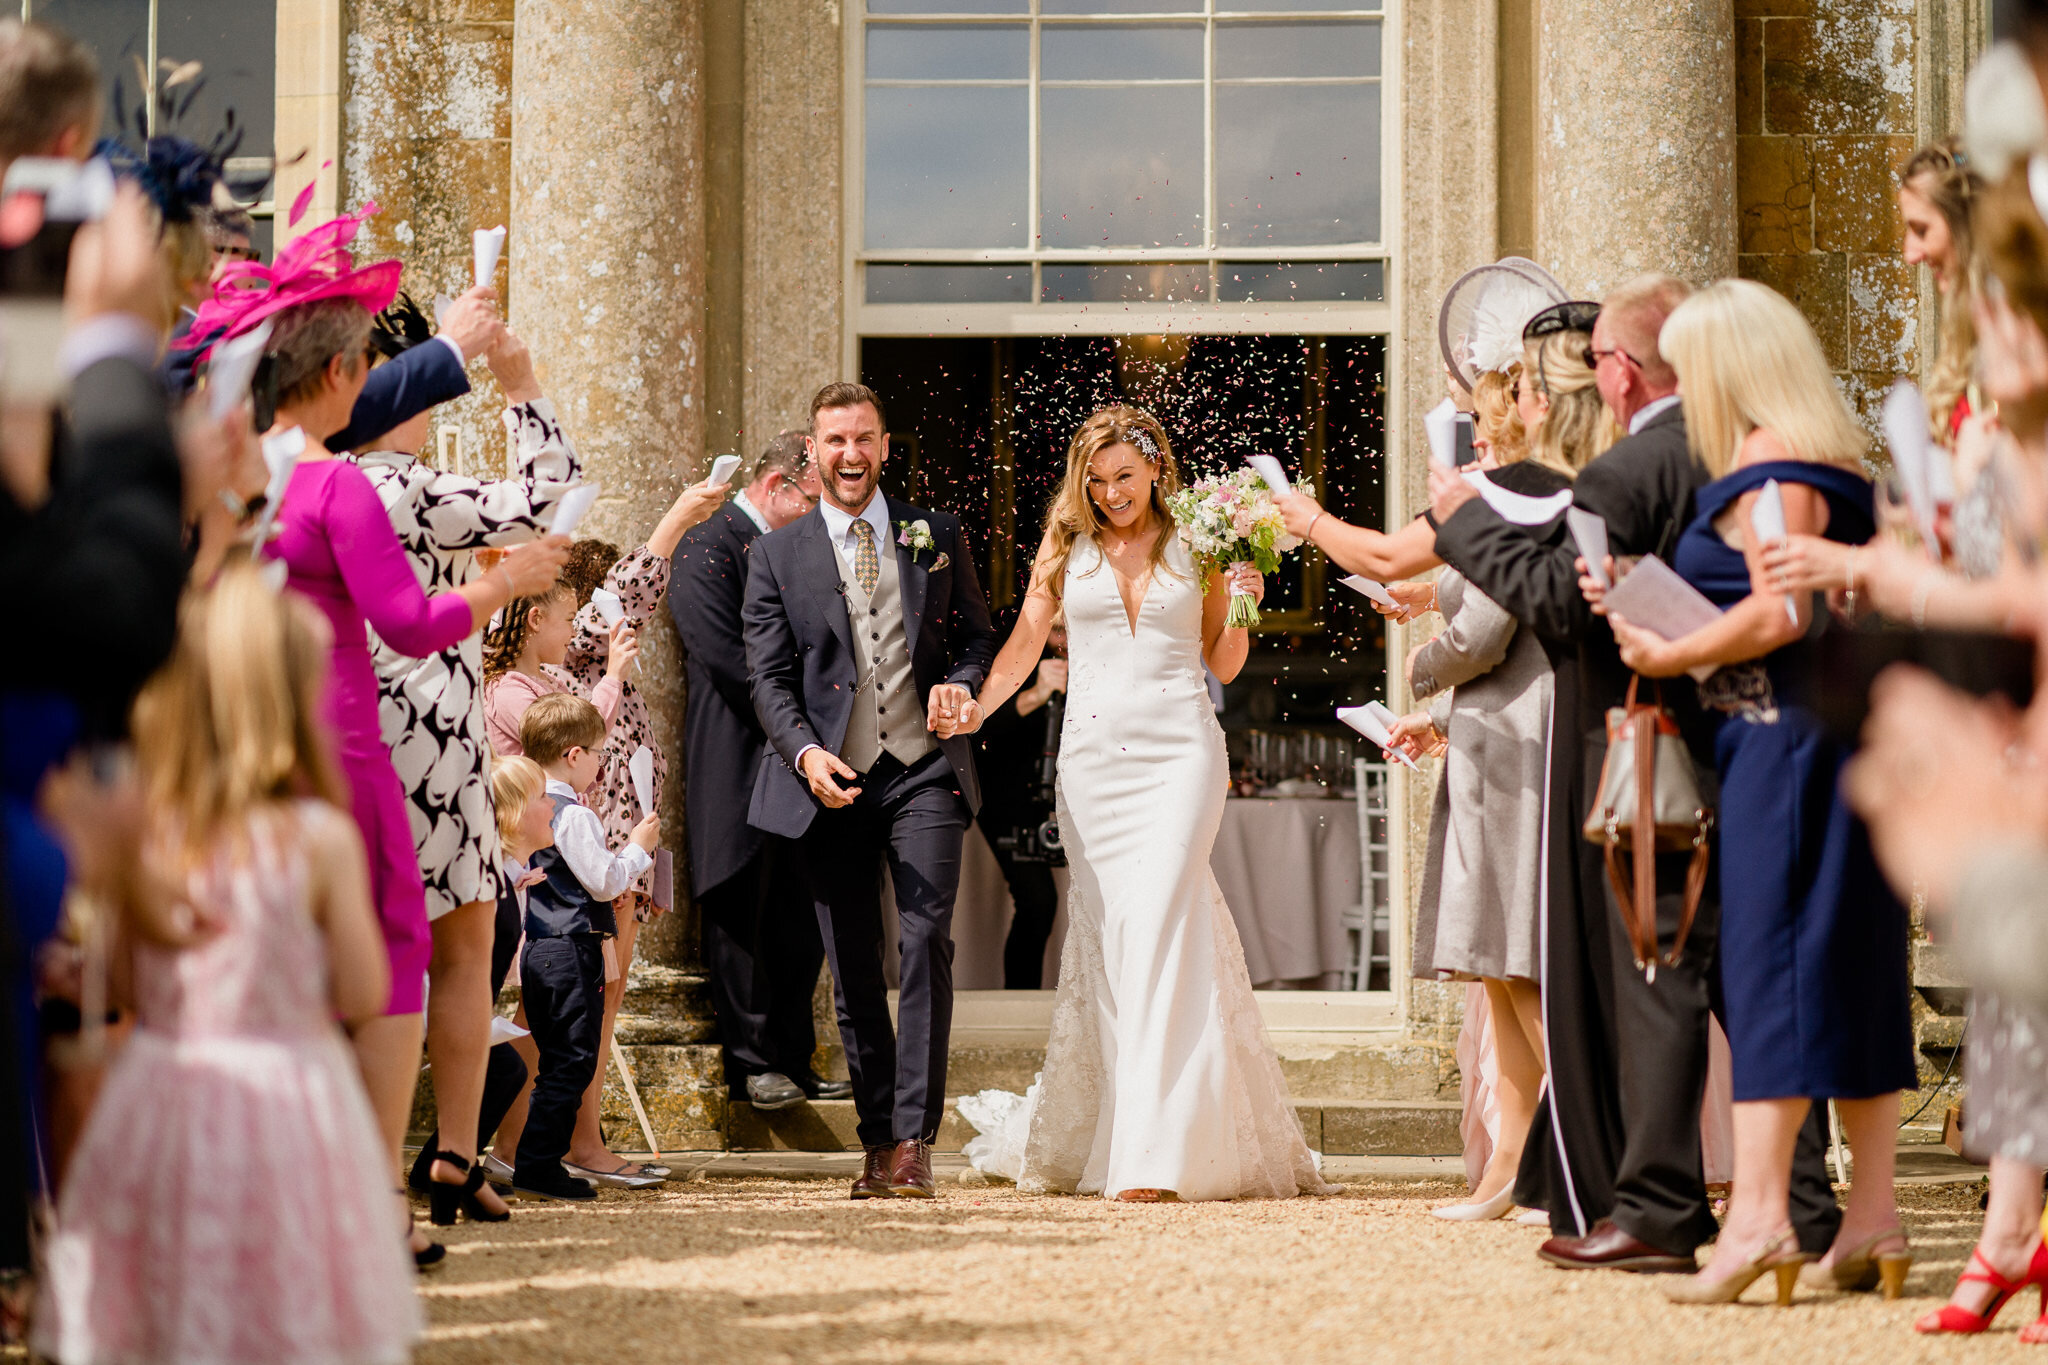 Mr and Mrs Smith, Aynhoe Park